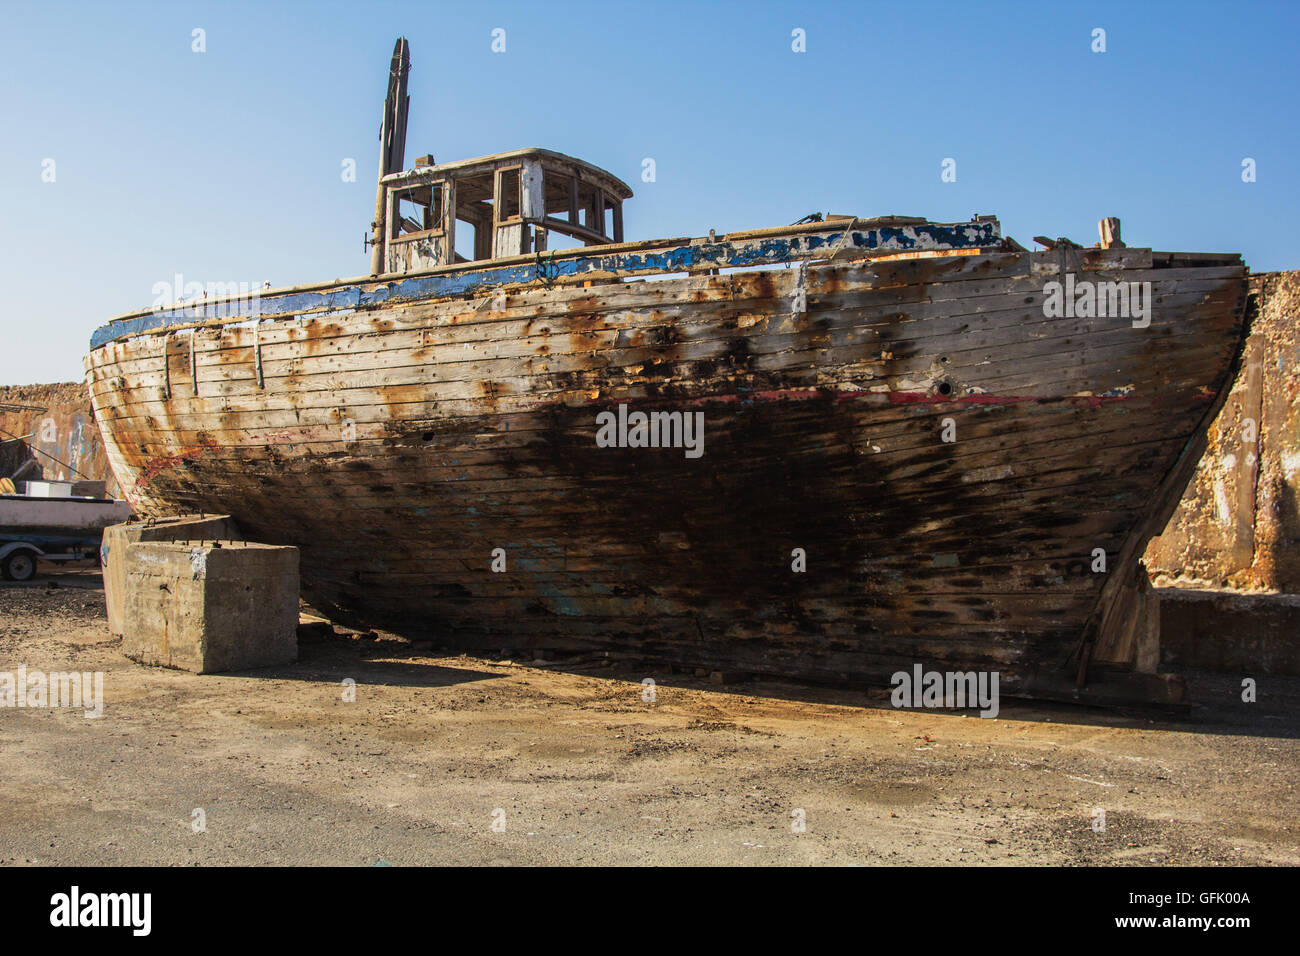 There is an abandoned old ship full of rust and mold on the inland port area, - Stock Image